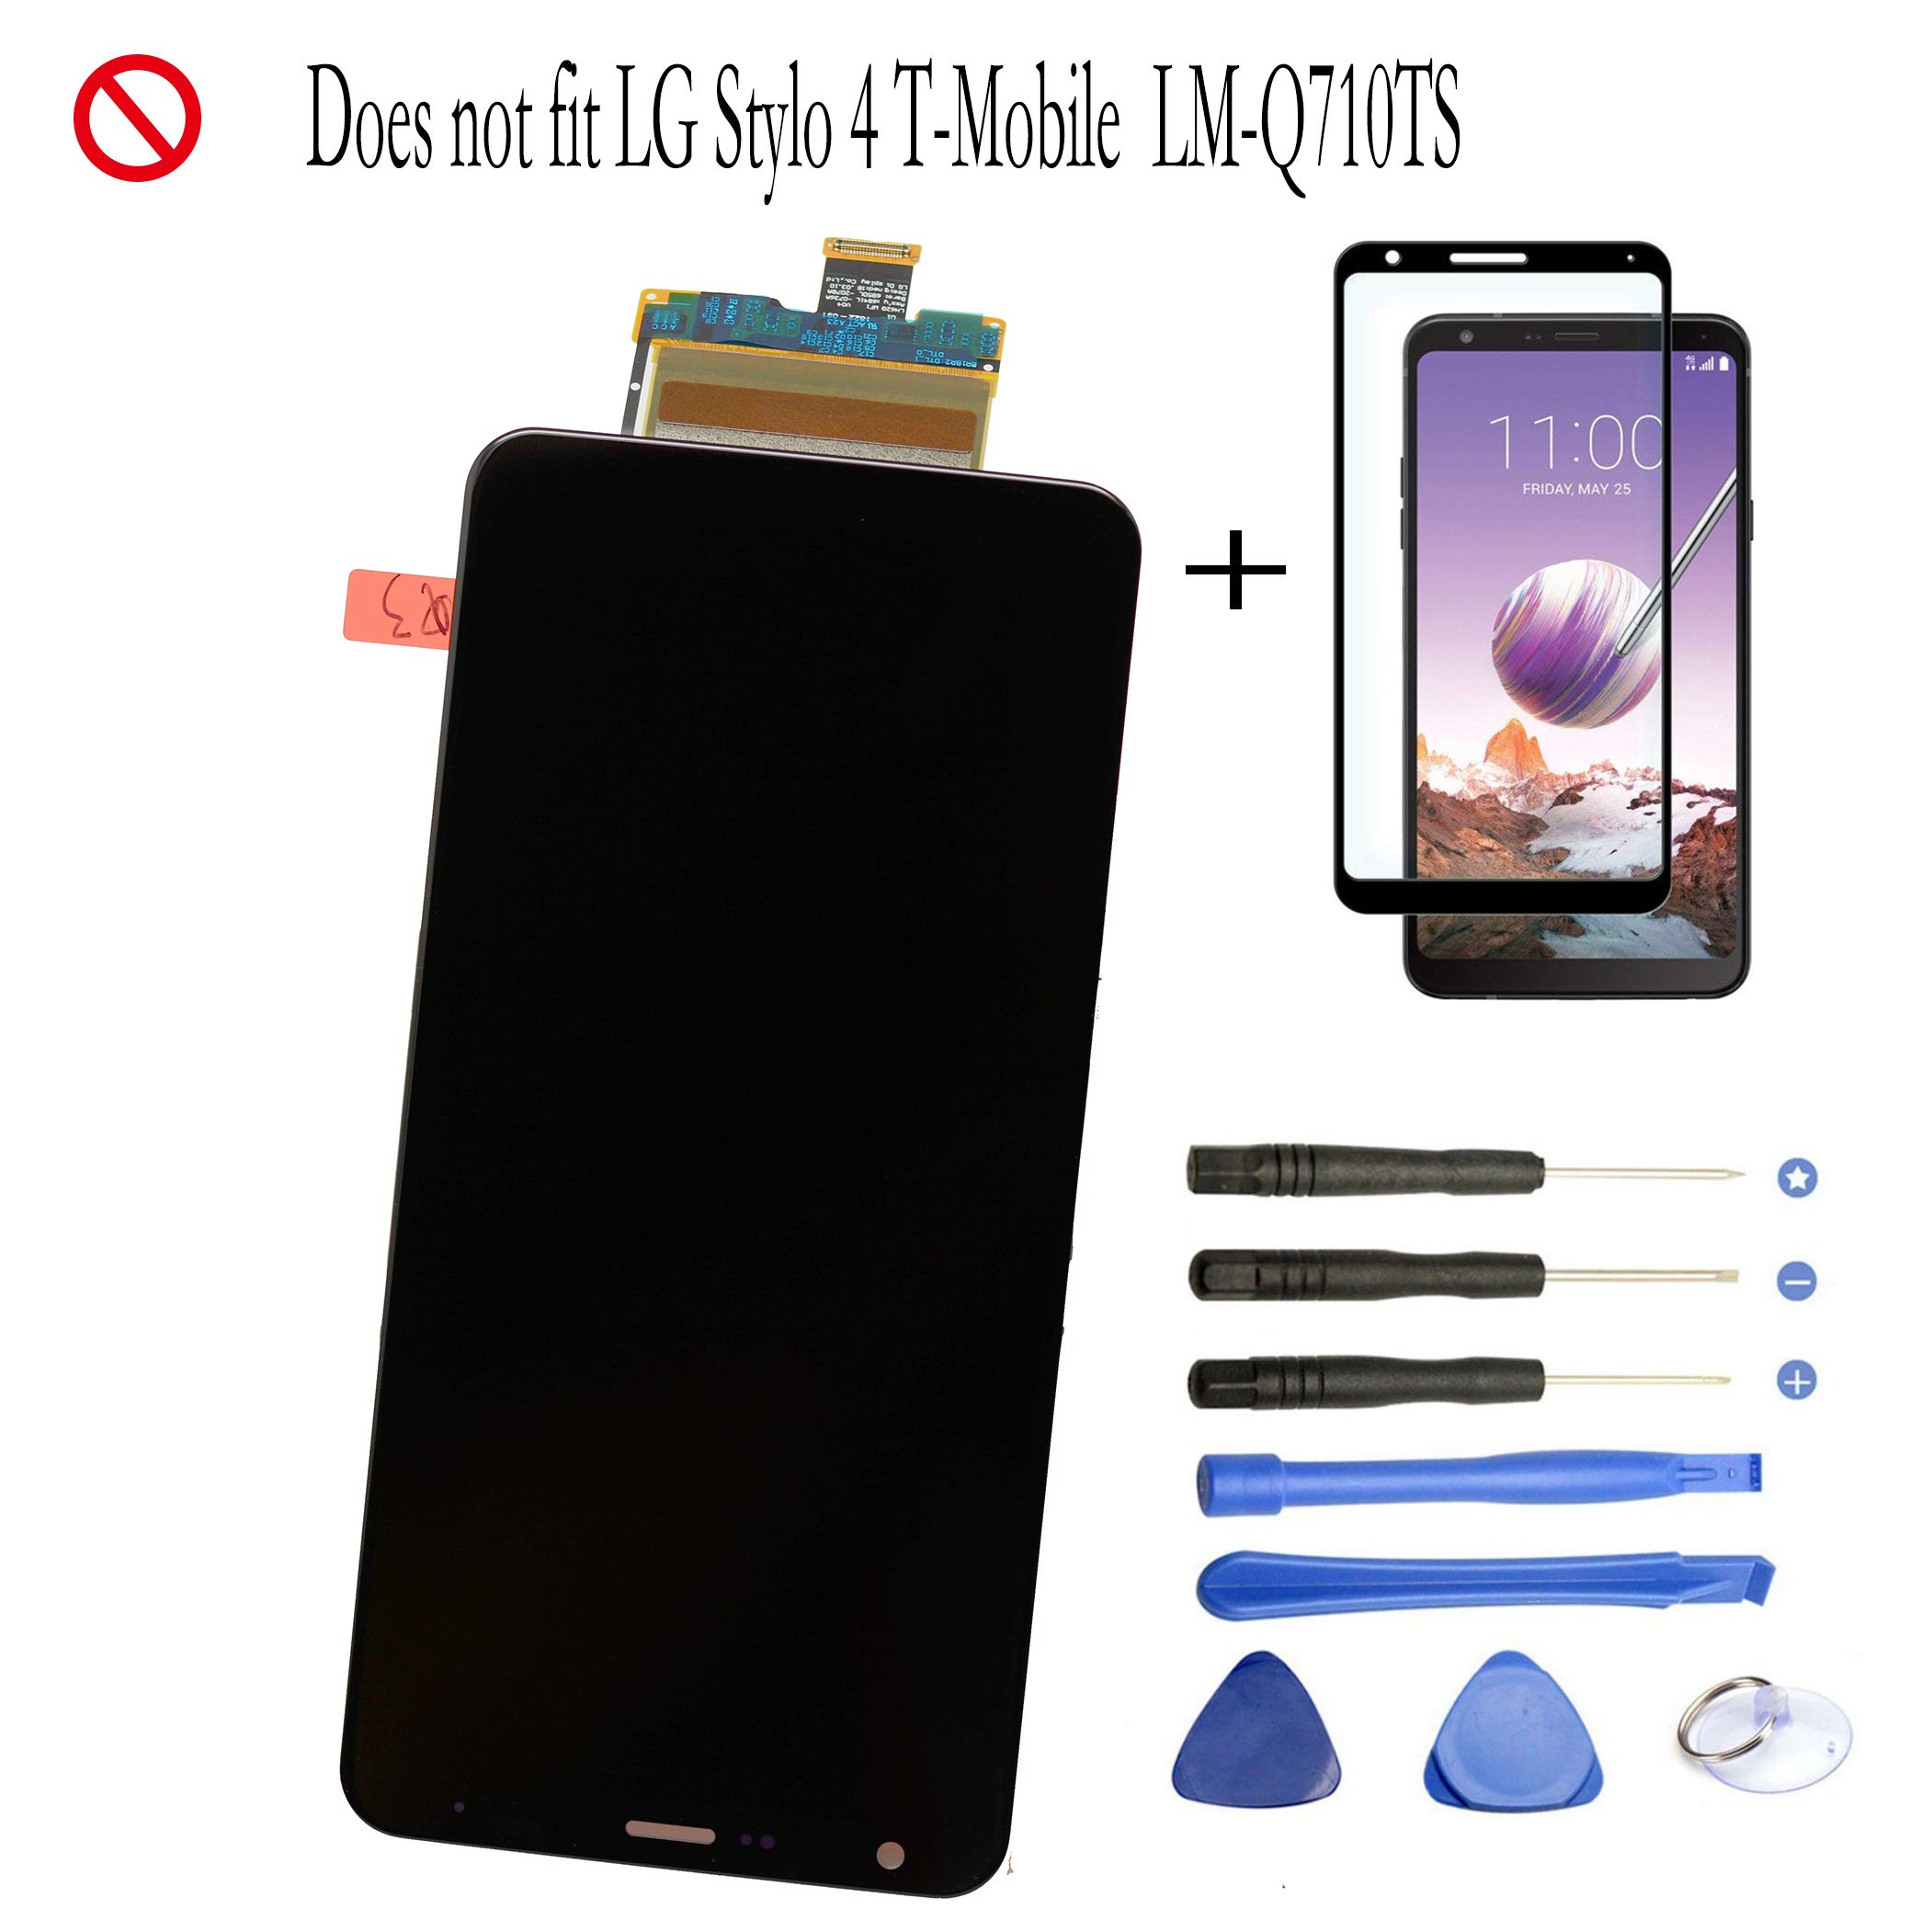 Eaglewireless Replacement Full LCD Screen Assembly with Touch Screen Digitizer and LCD Pre-Installed for LG Stylo 4 / Q Stylus Q710 Q710MS Q710AL Q710US 6.2''+Free Tempered Glass Protector by Eaglewireless